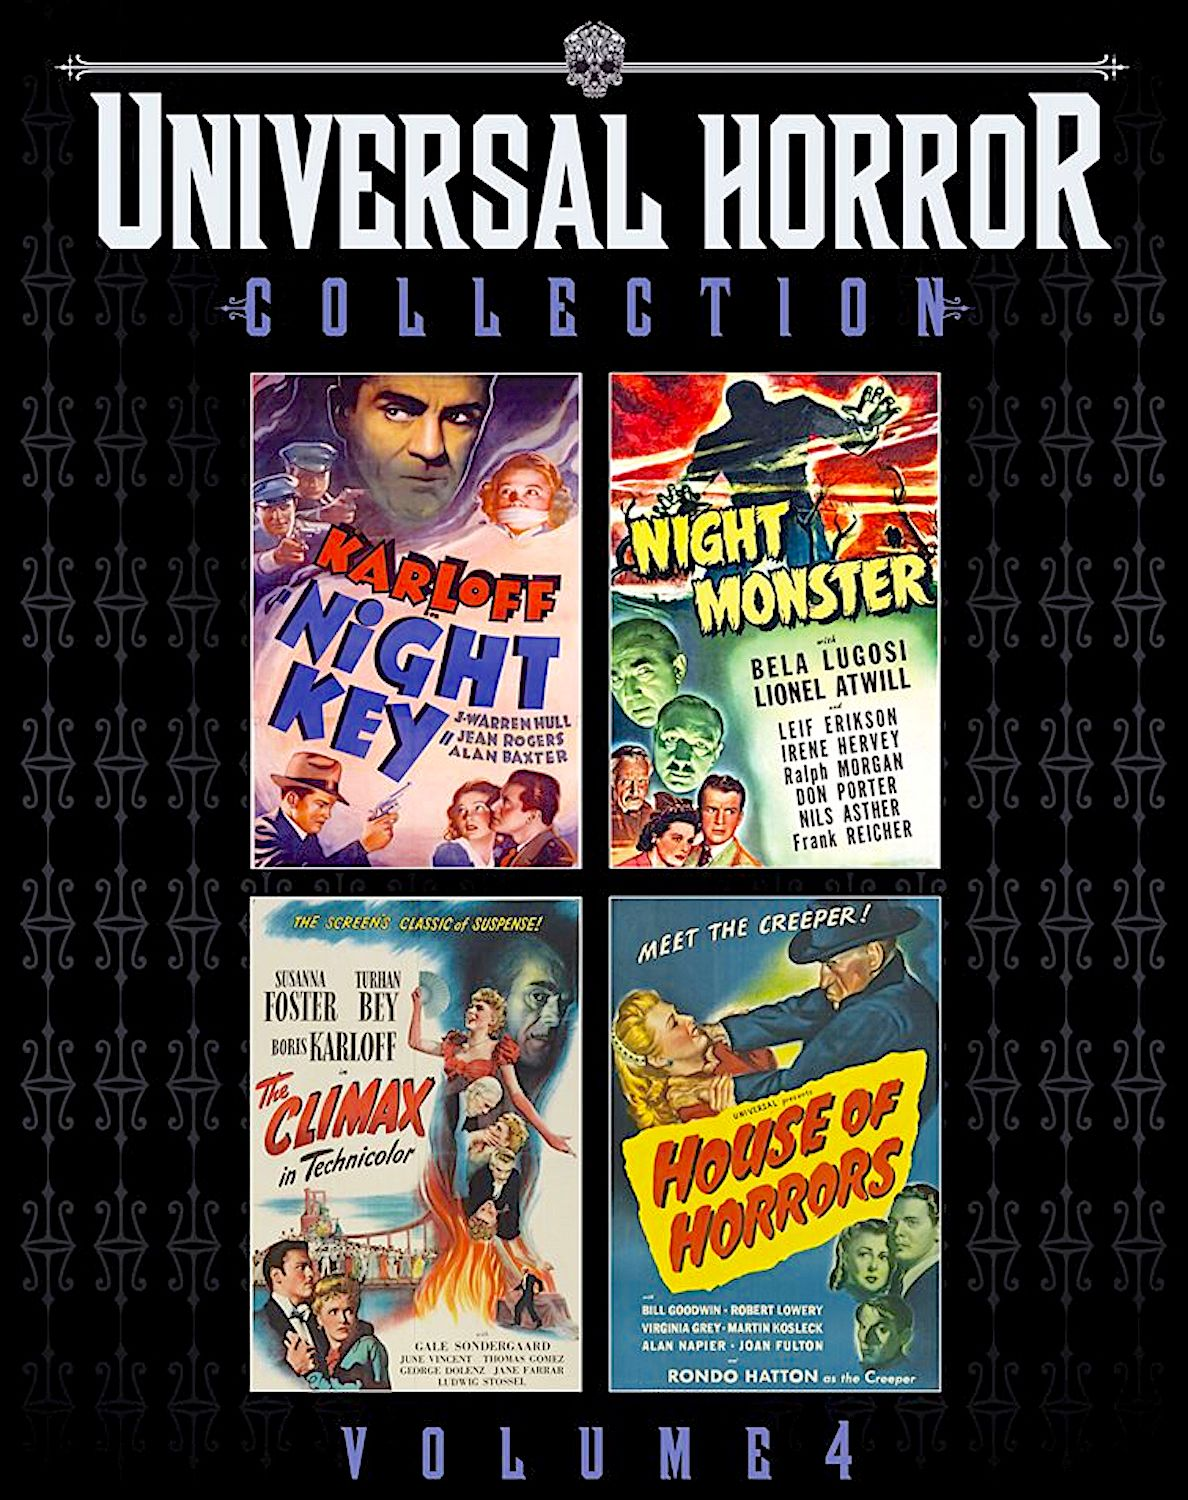 UNIVERSAL HORROR COLLECTION VOLUME 4 NIGHT KEY / NIGHT